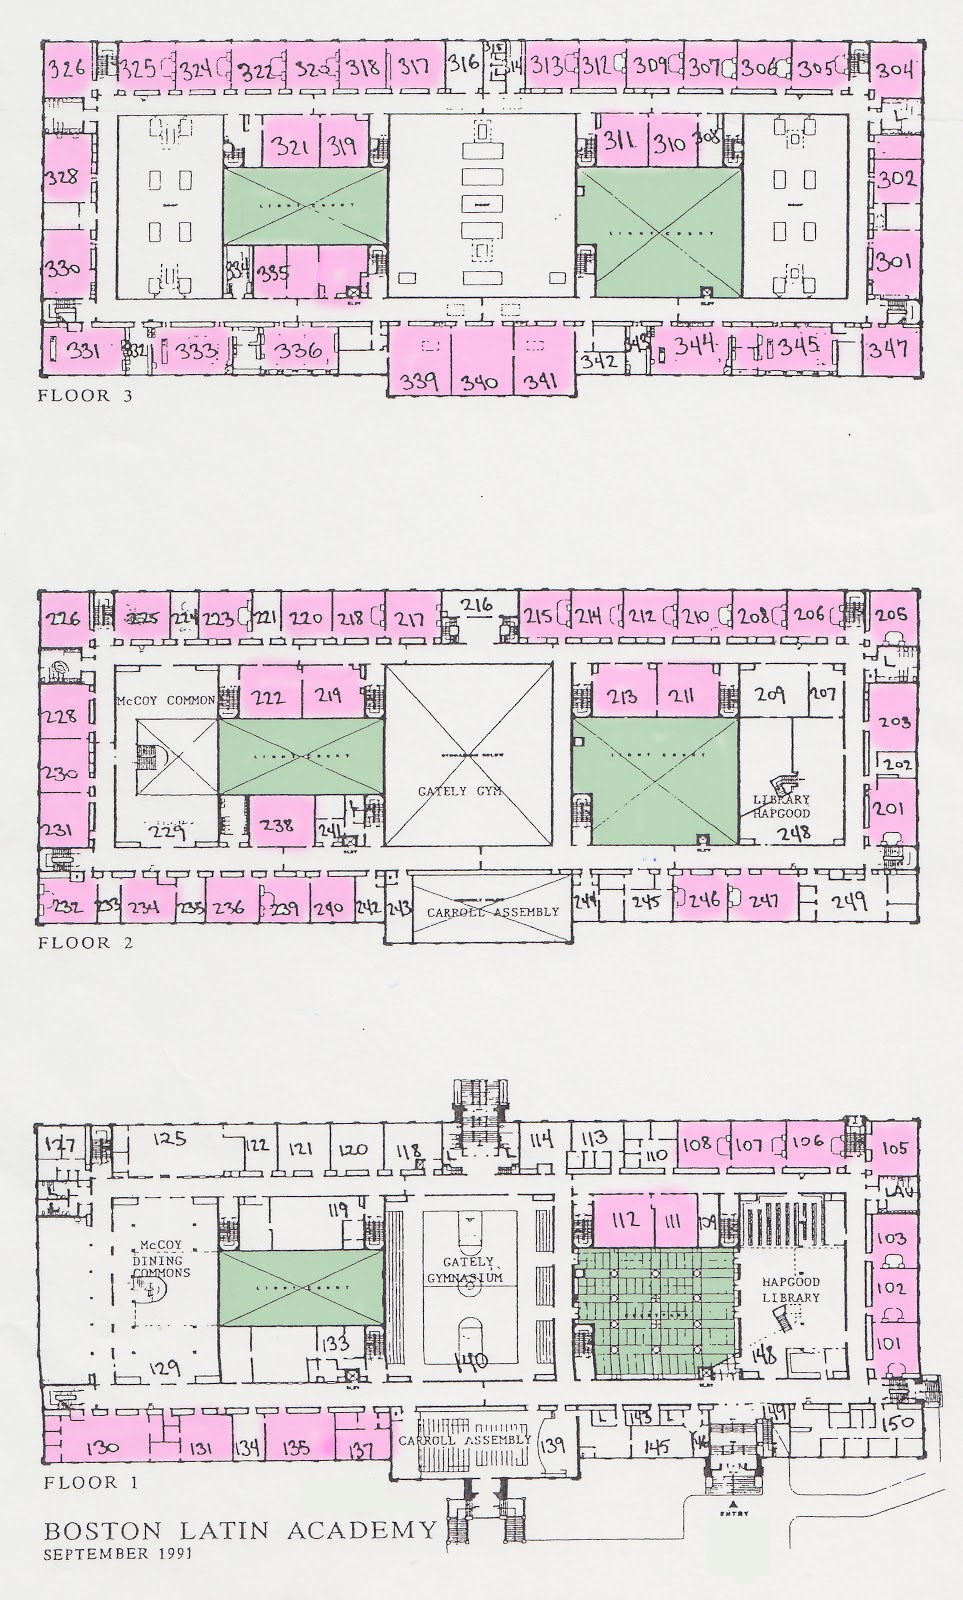 Floor Plans Boston Latin Academy S 75 Full Size Classrooms 205